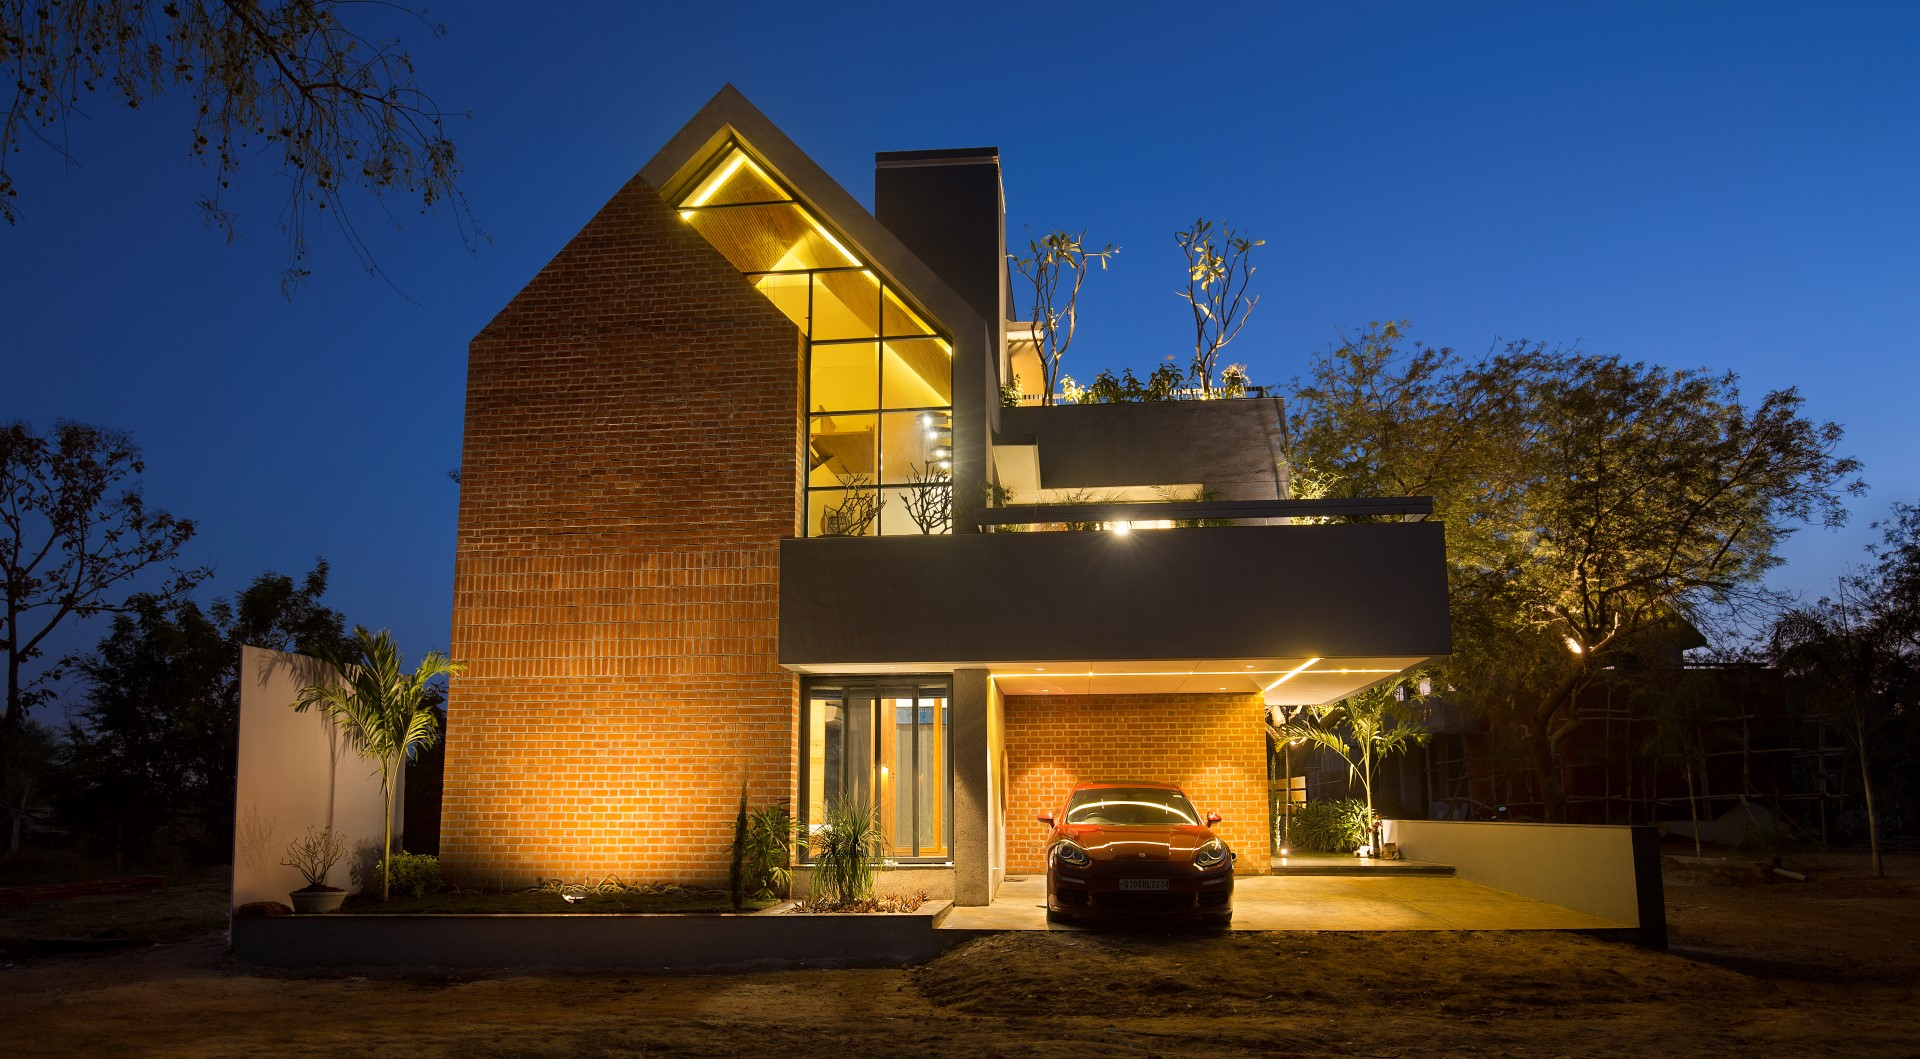 Brick Front Elevation Designs : An exposed brick front elevation gives the villa